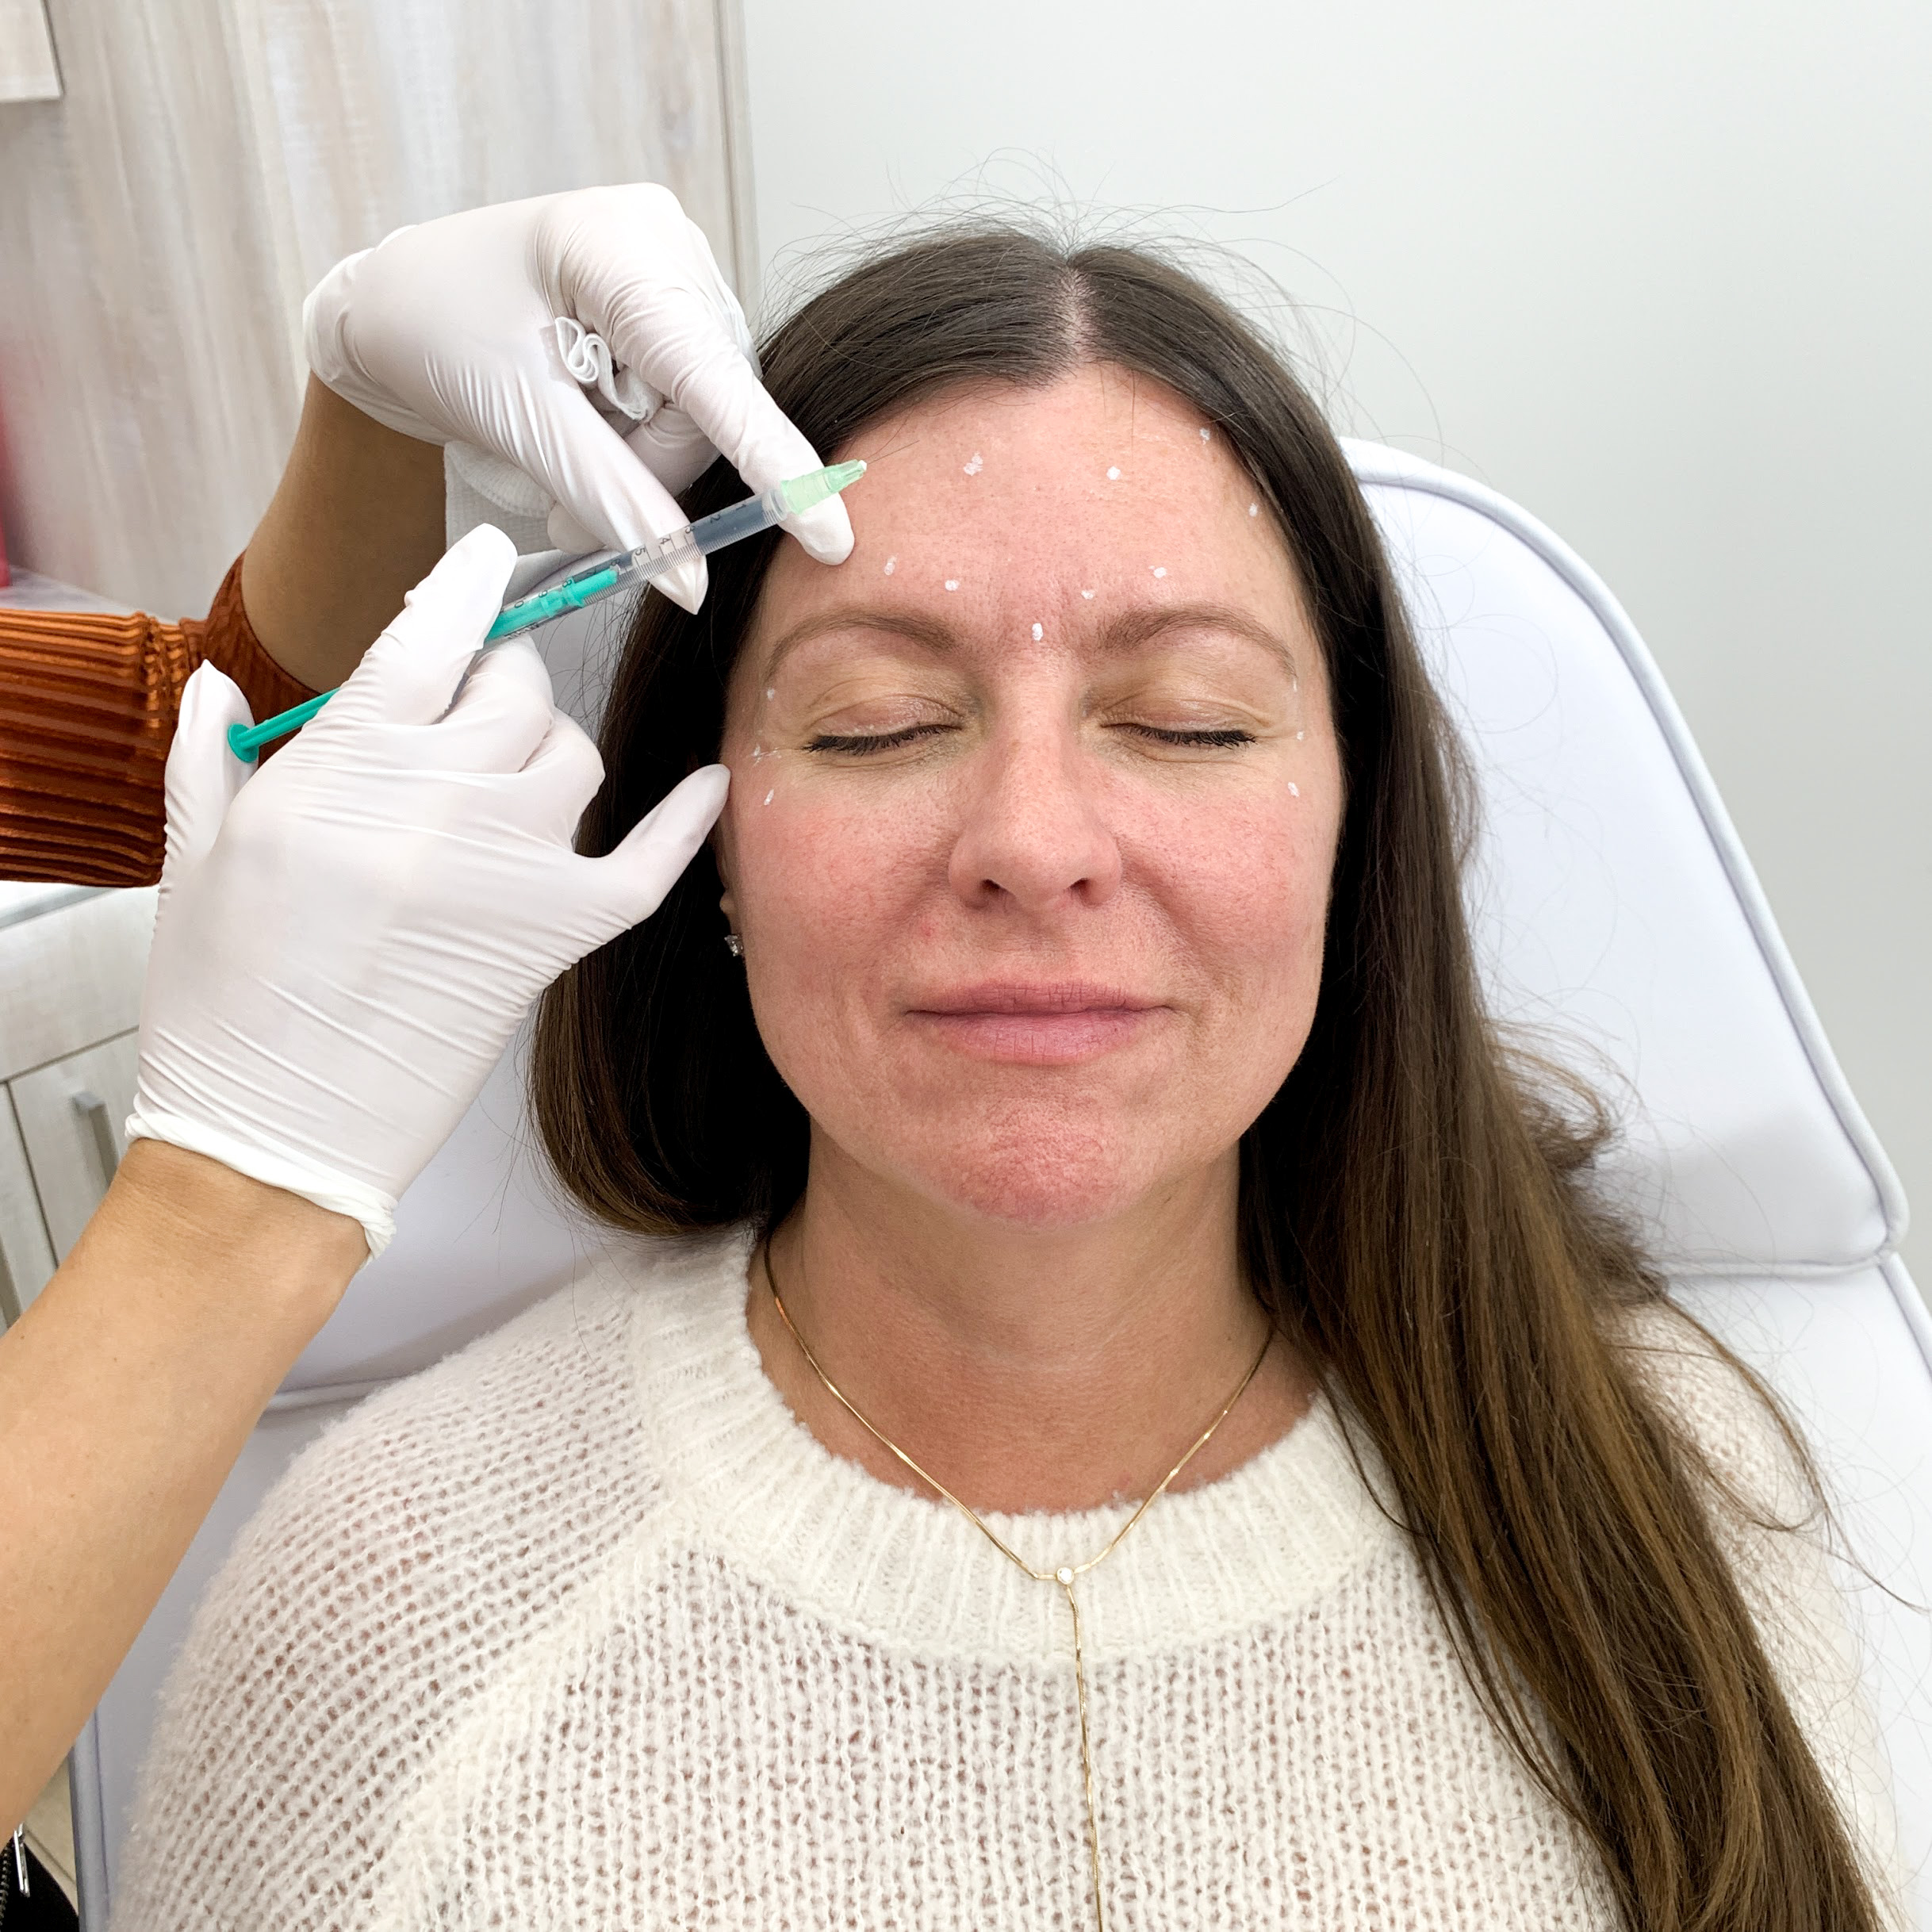 woman getting botox injections in her forehead